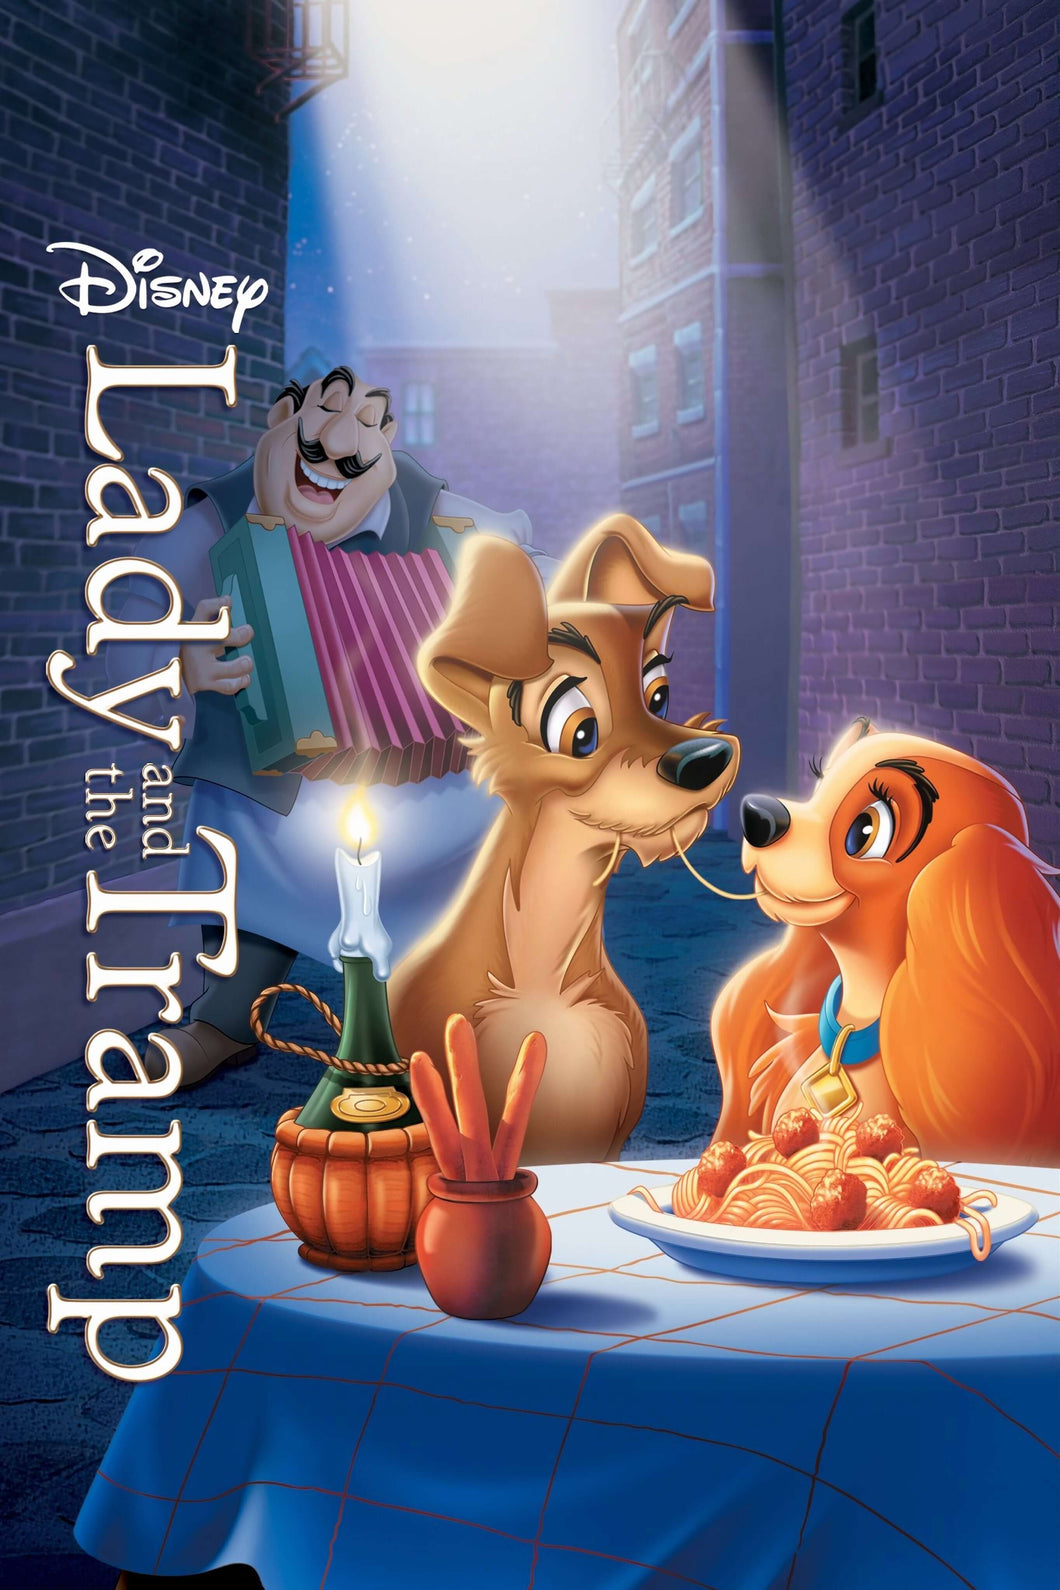 Lady and the Tramp | HD Movies Anywhere Code Ports to Vudu, iTunes, GP - Movie Sometimes